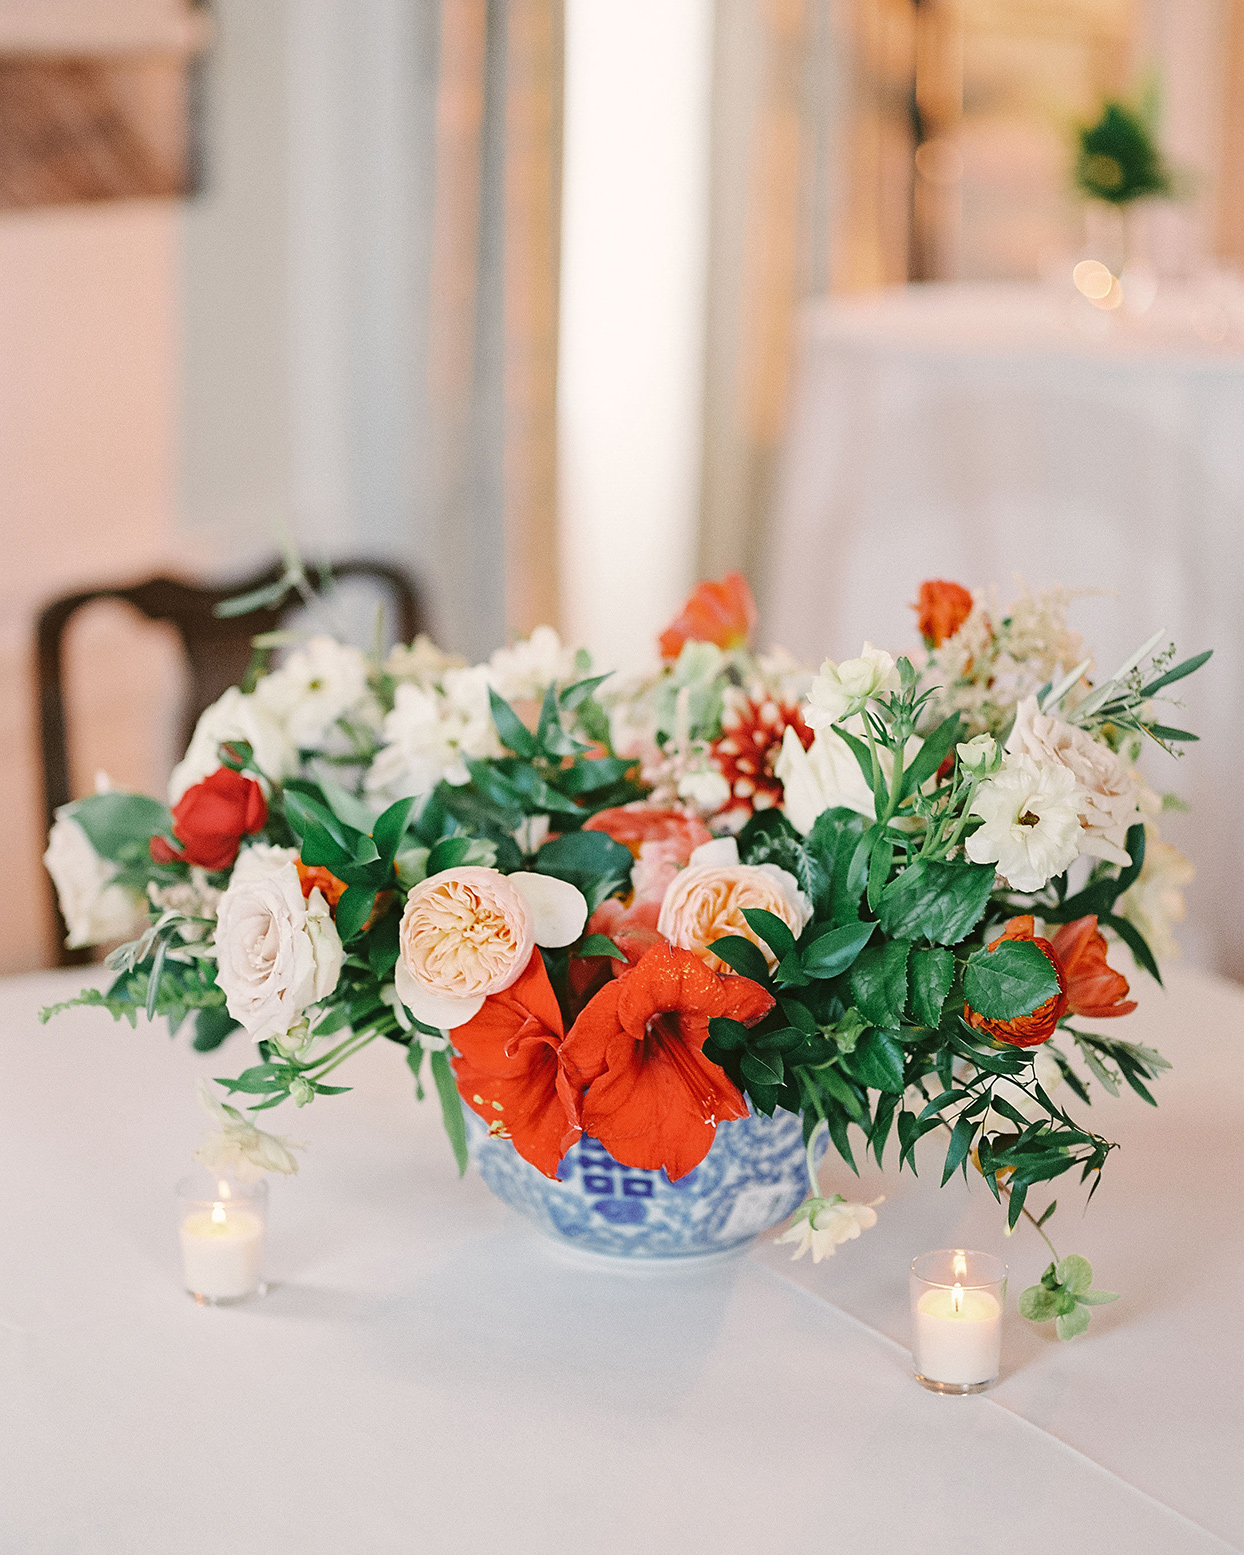 beverly steve red and white floral wedding centerpiece